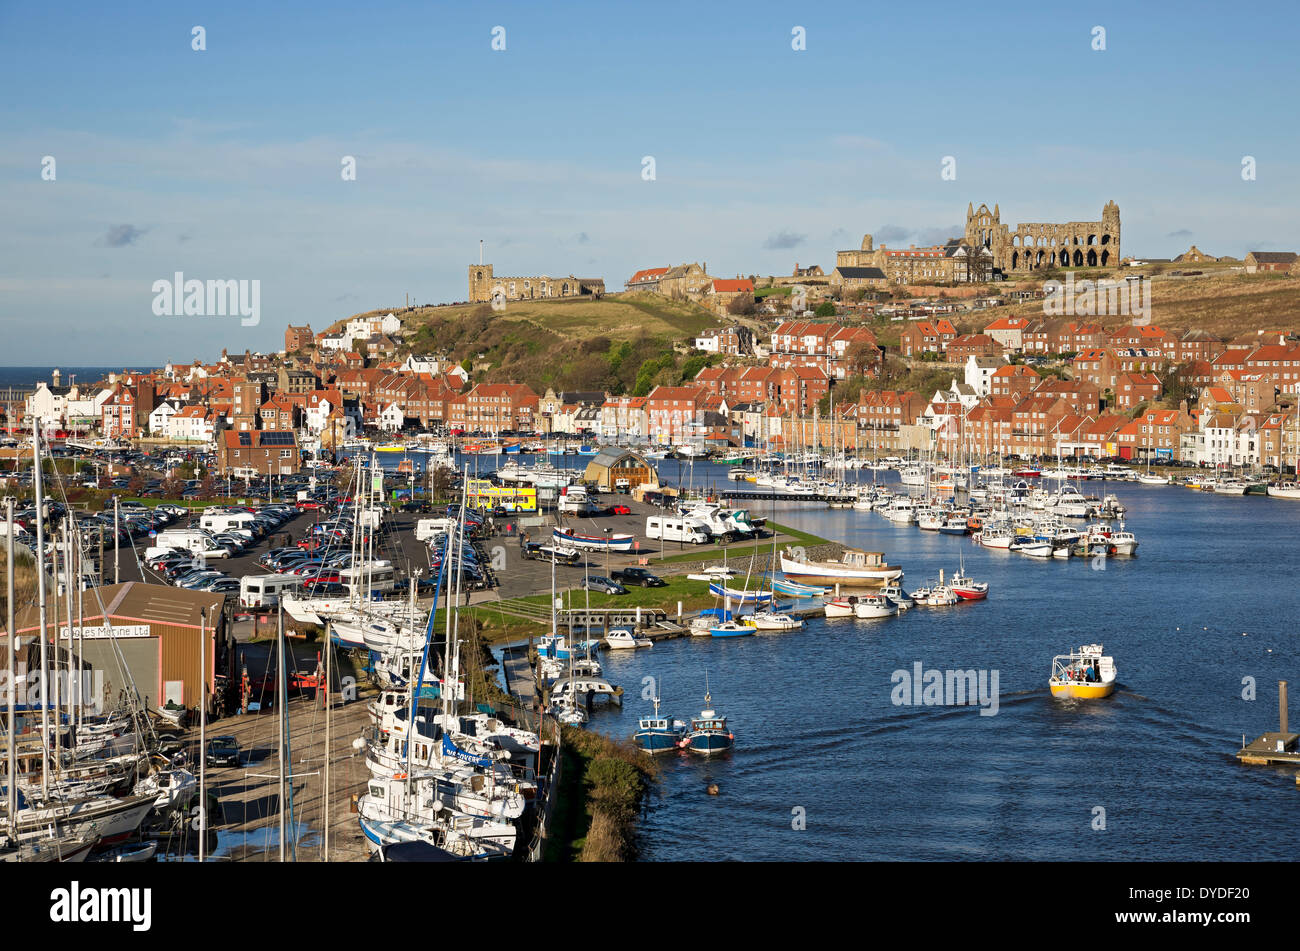 Looking along River Esk towards the harbour at Whitby. - Stock Image